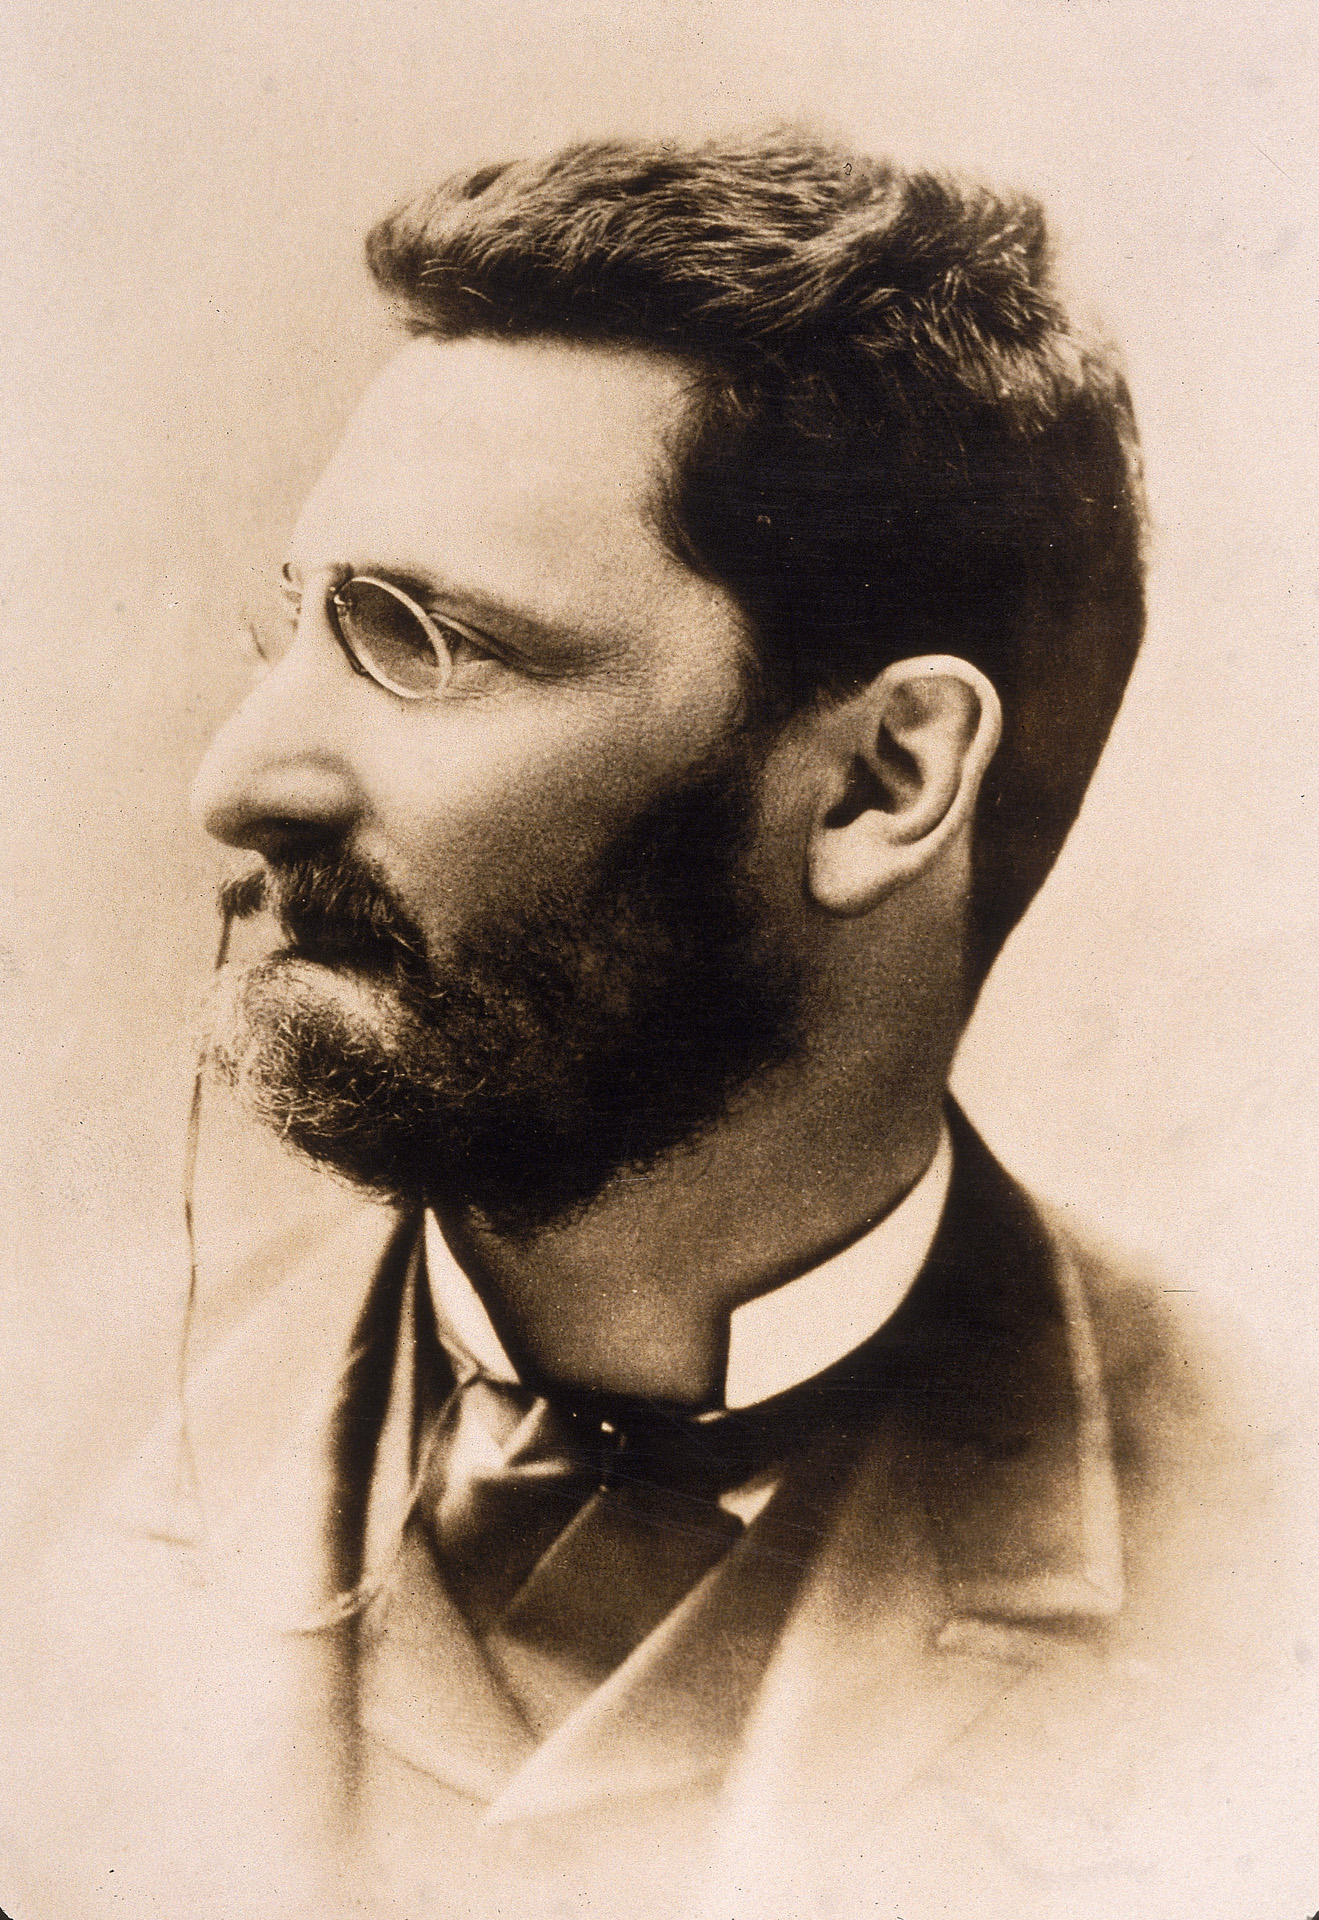 Profile portrait of Hungarian-born journalist Joseph Pulitzer (1847 - 1911), publisher of the St. Louis Post-Dispatch and the New York World newspapers, 1880s. In his will, Pulitzer left Columbia University